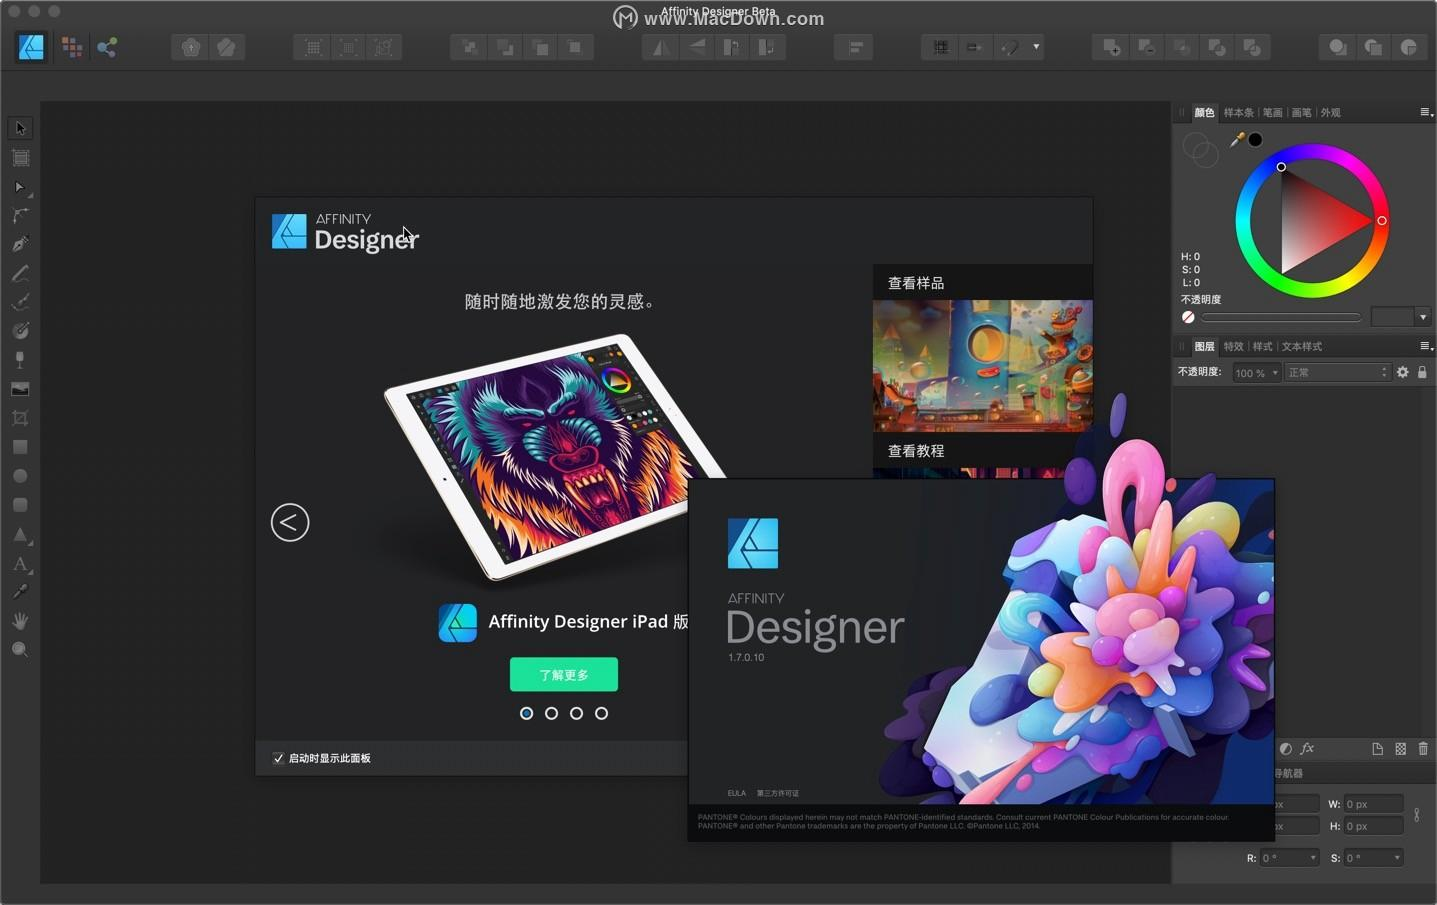 Vector Drawing Design Software Affinity Designer For Mac V1 7 0 10 Chinese Activation Version Two Words Describe Smooth Programmer Sought